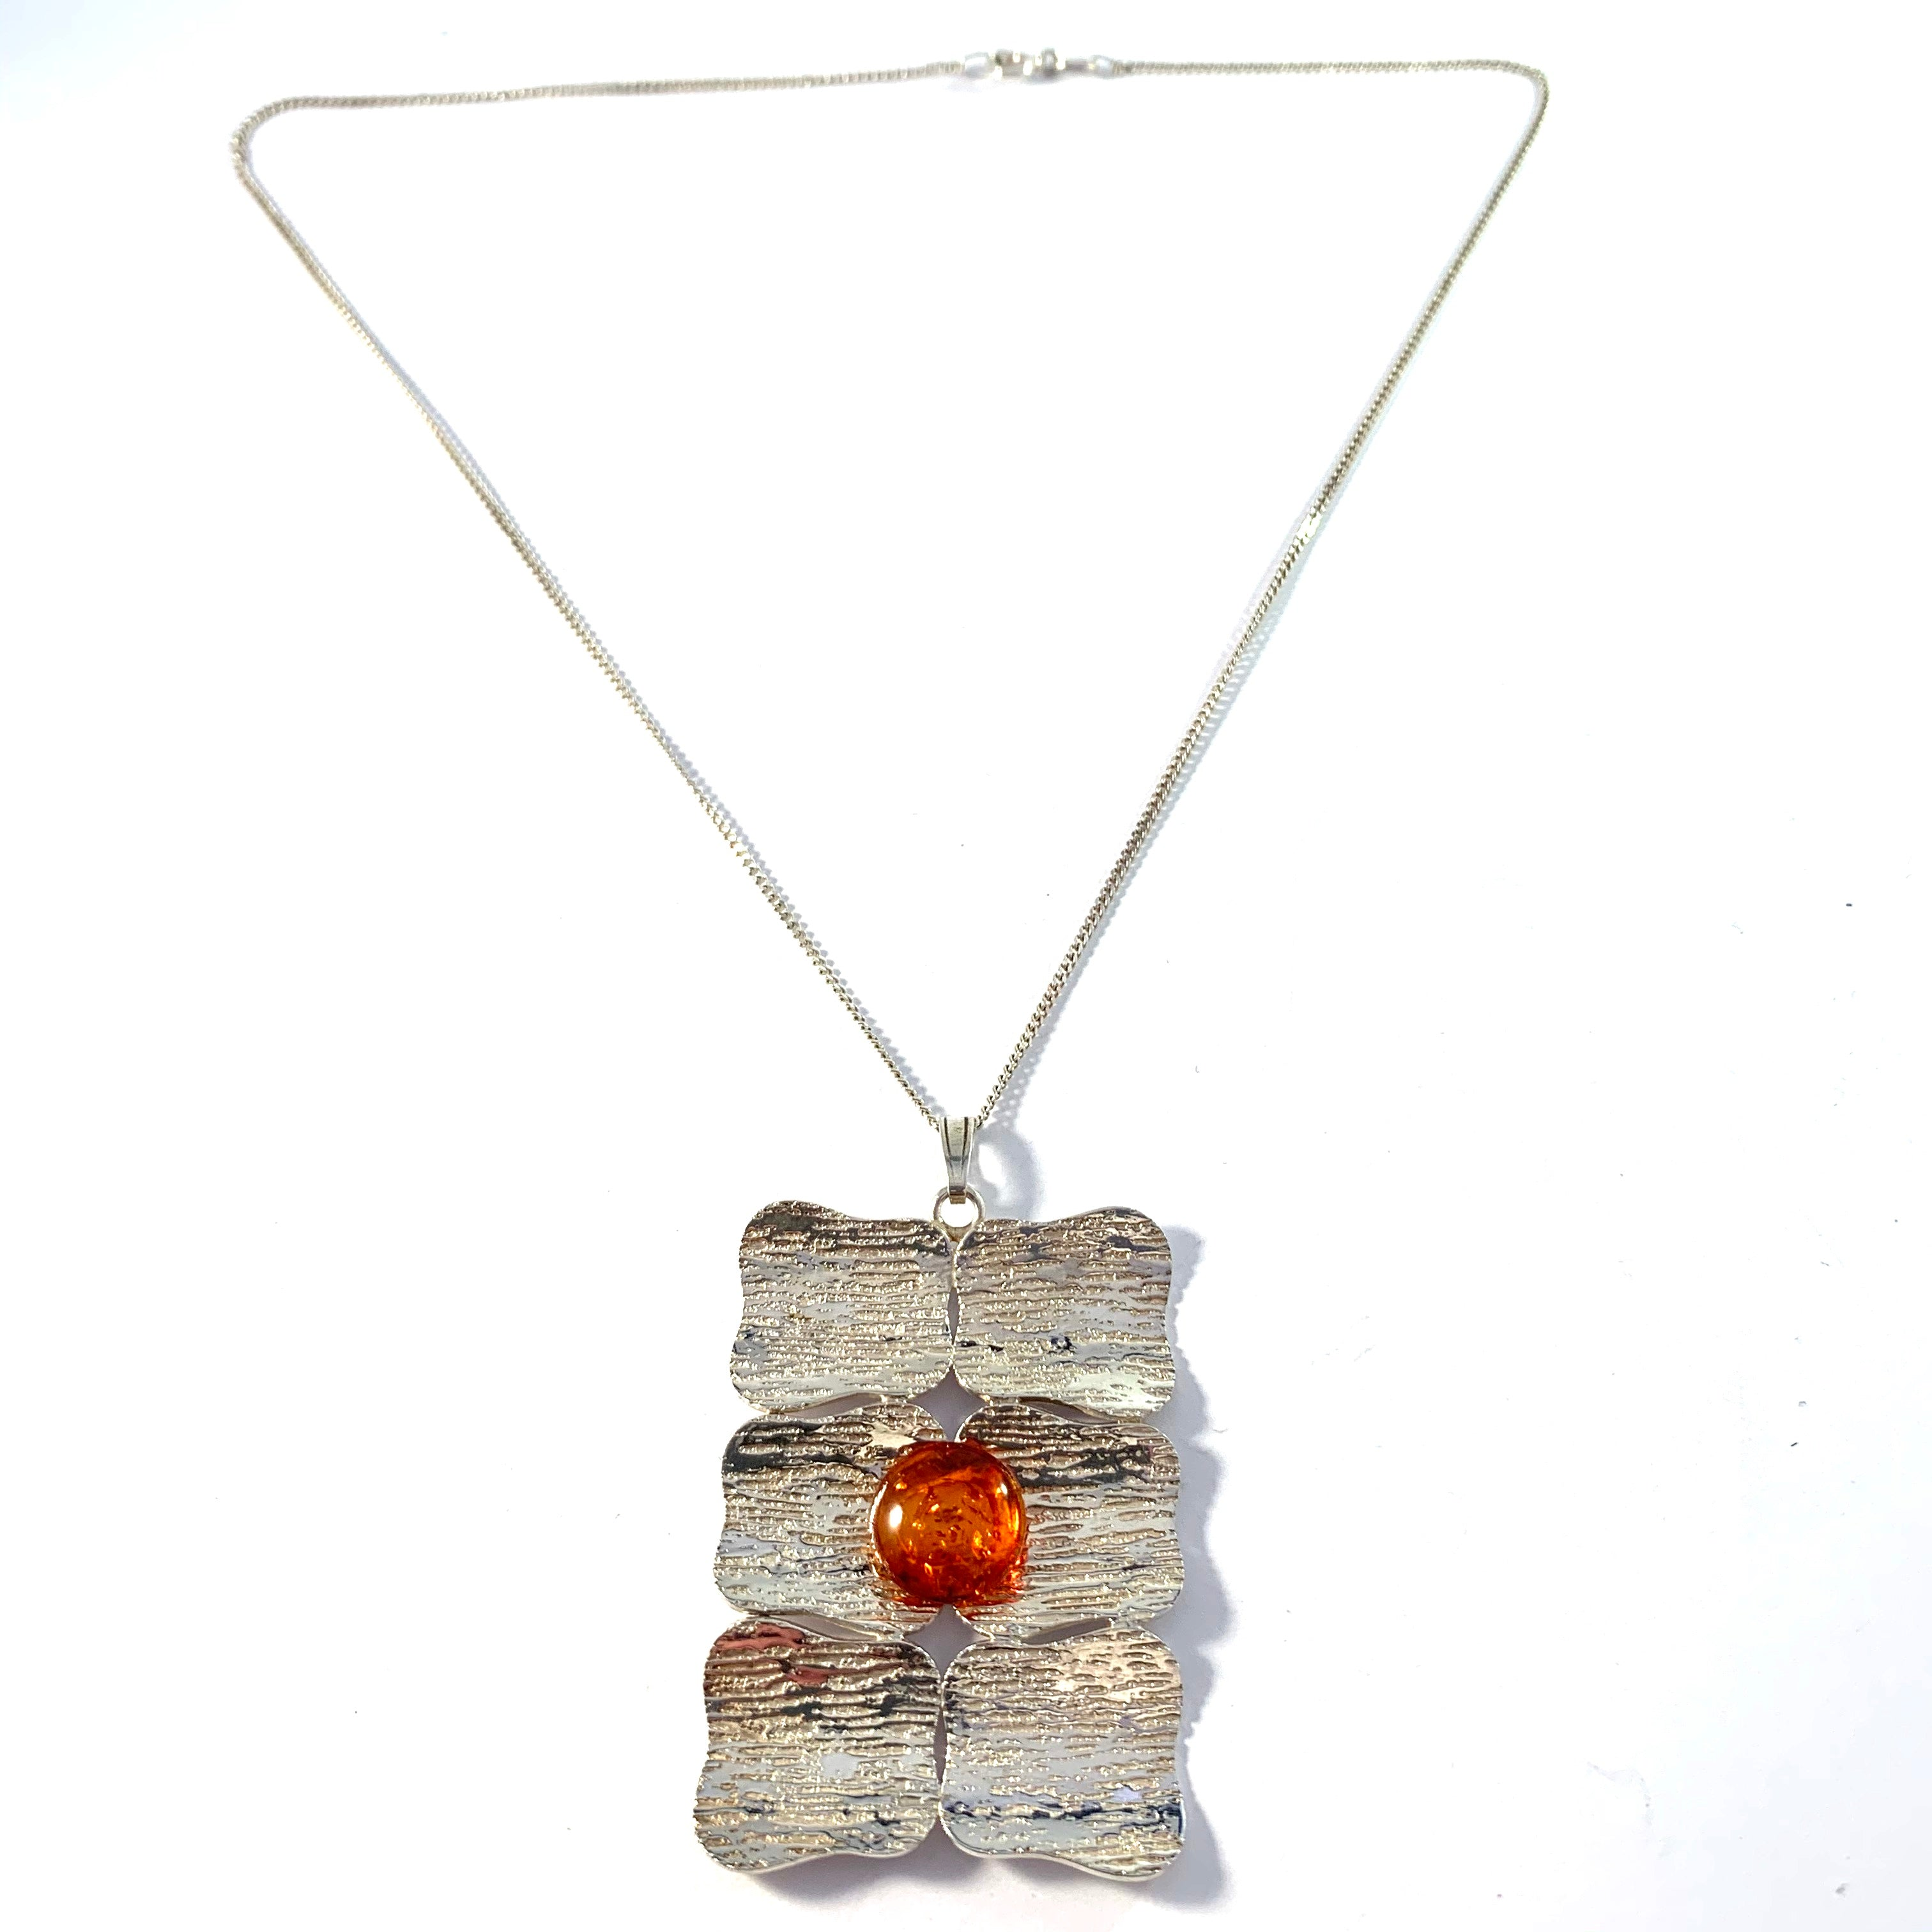 Vintage 835 Silver Baltic Amber Pendant Necklace.